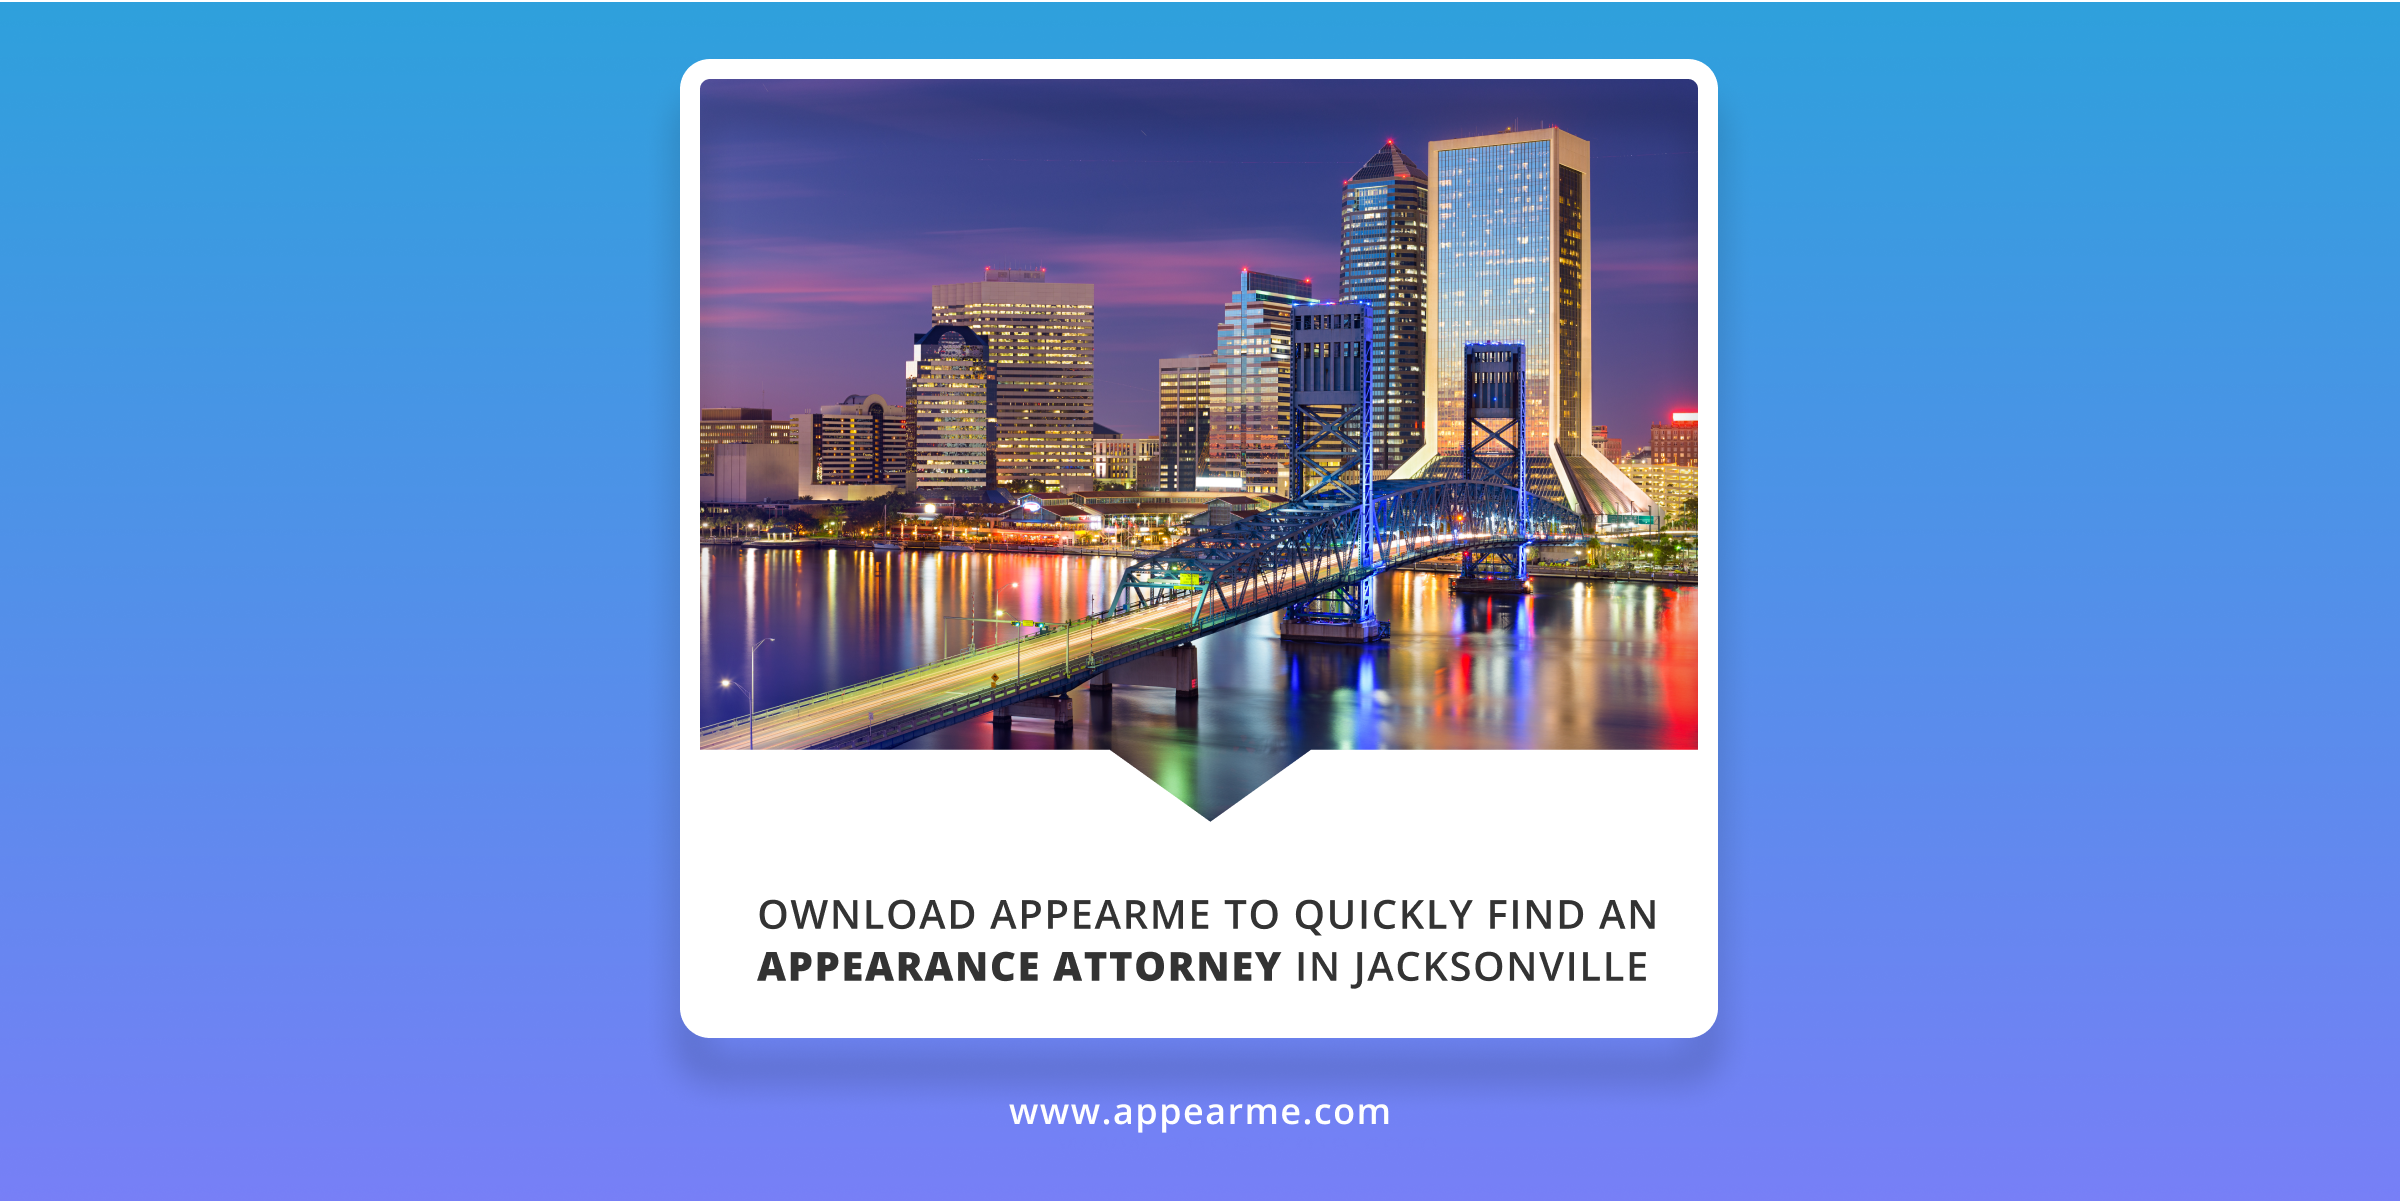 Download AppearMe to Quickly Find an Appearance Attorney in Jacksonville